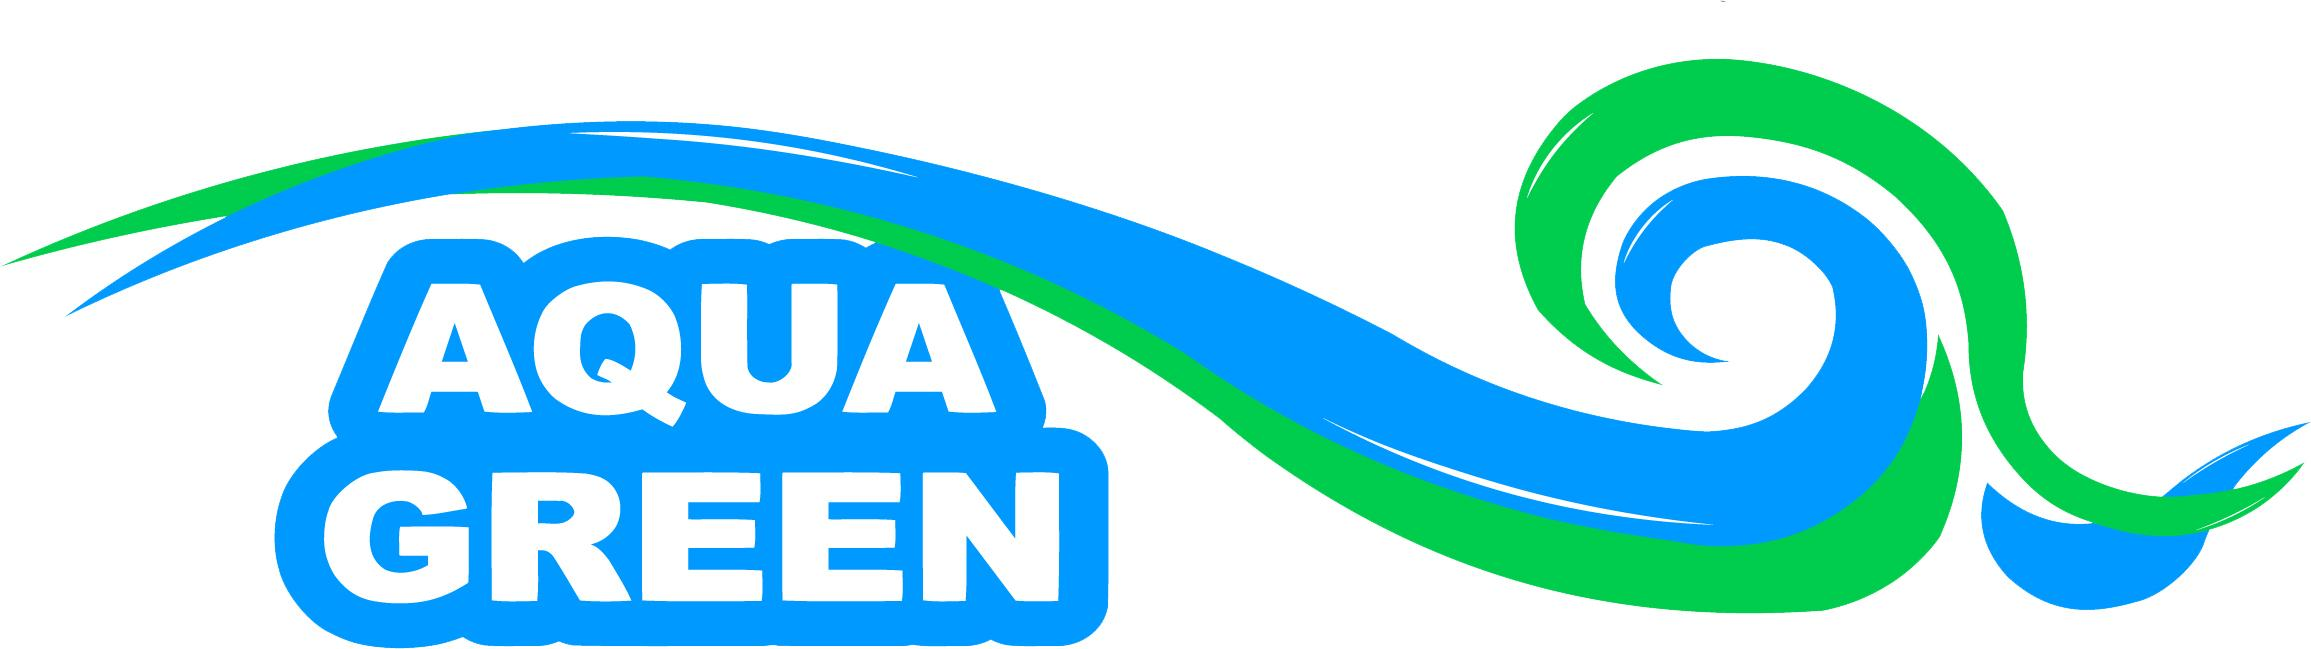 aquagreen logo_1_28